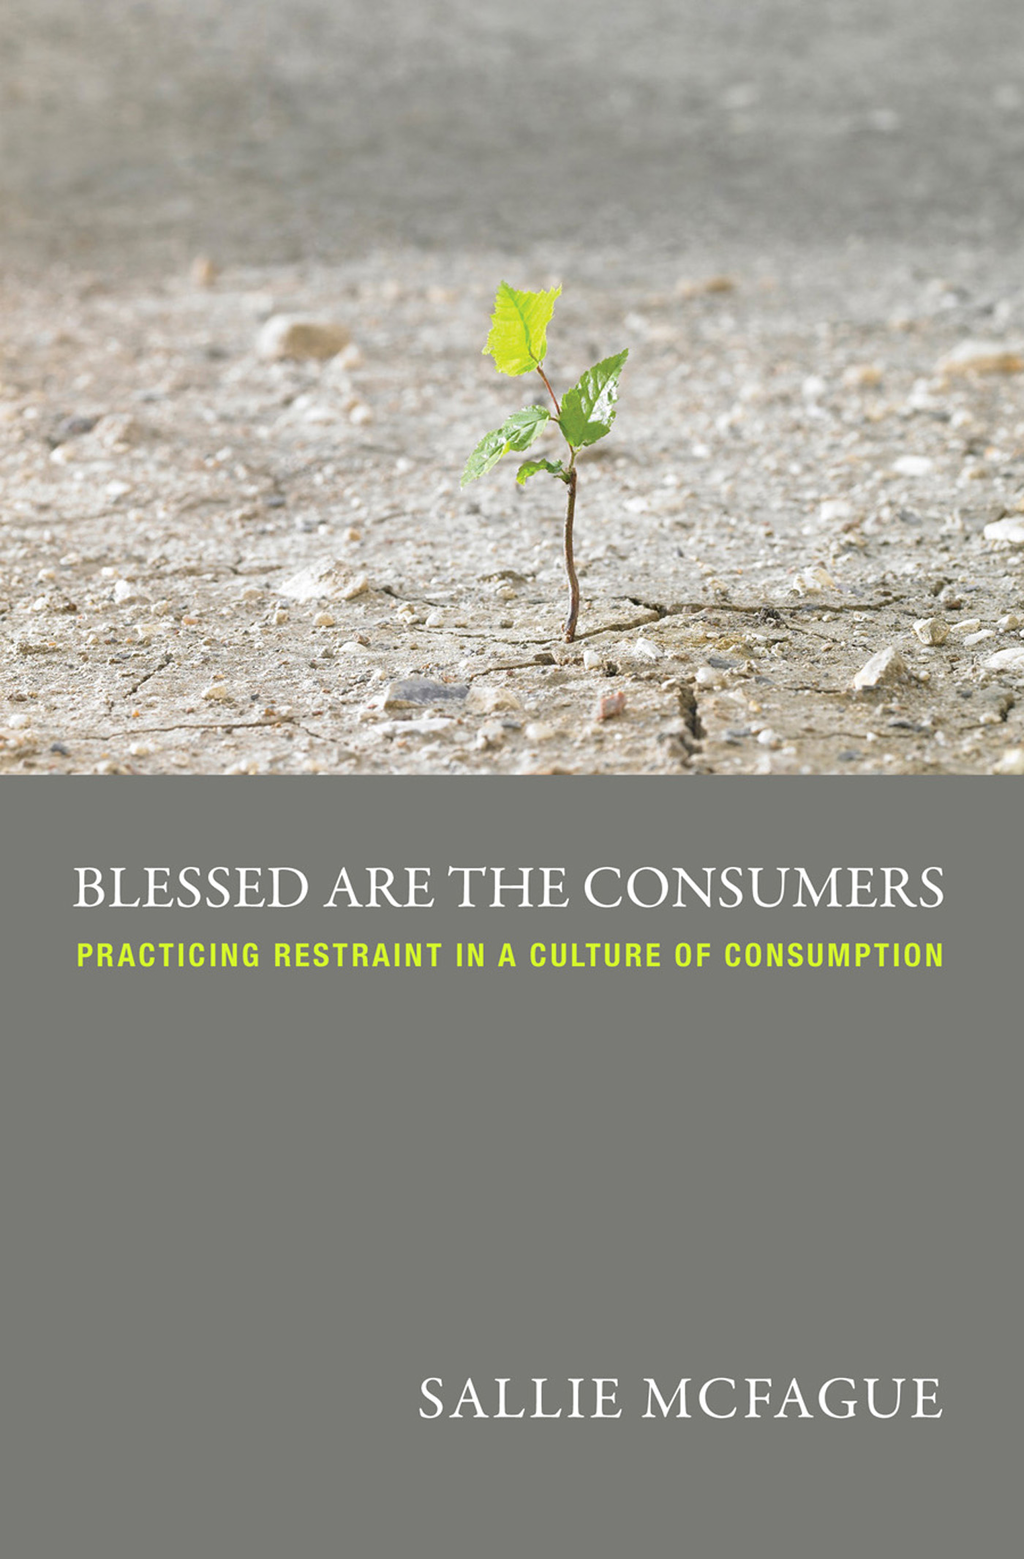 Blessed are the Consumers -- A Fortress Digital Review